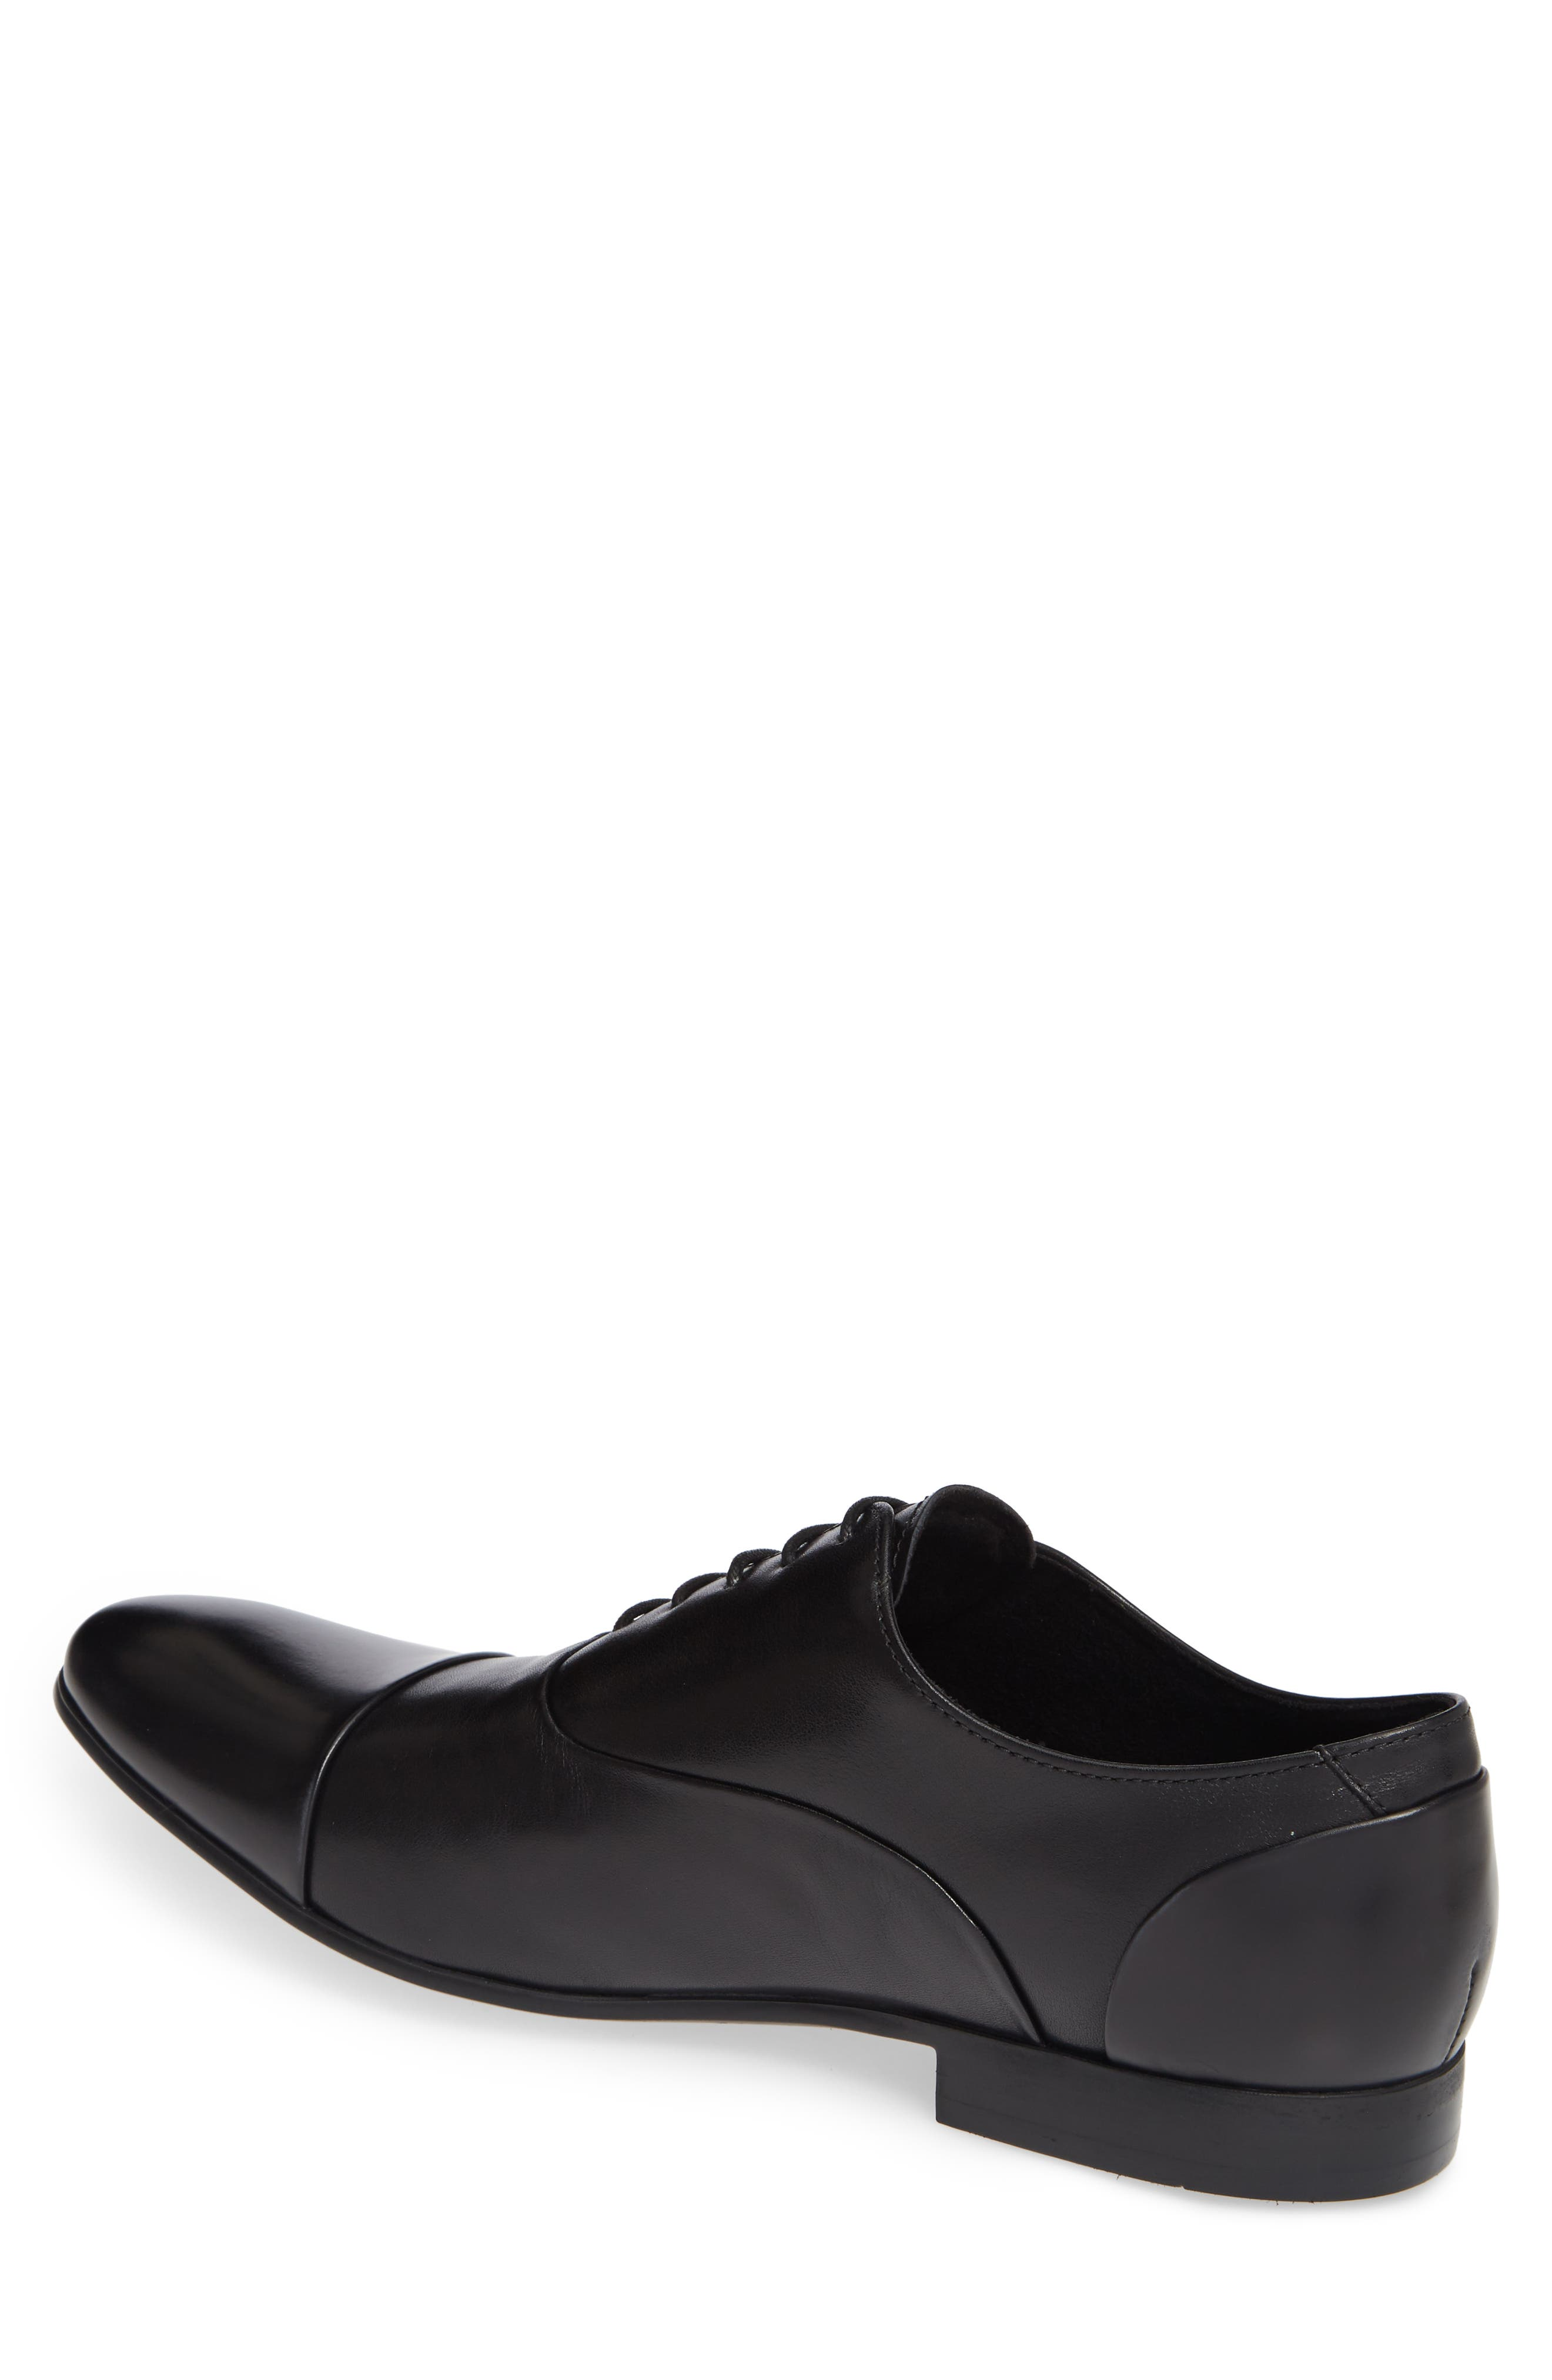 KENNETH COLE NEW YORK,                             Mix Cap Toe Oxford,                             Alternate thumbnail 2, color,                             008